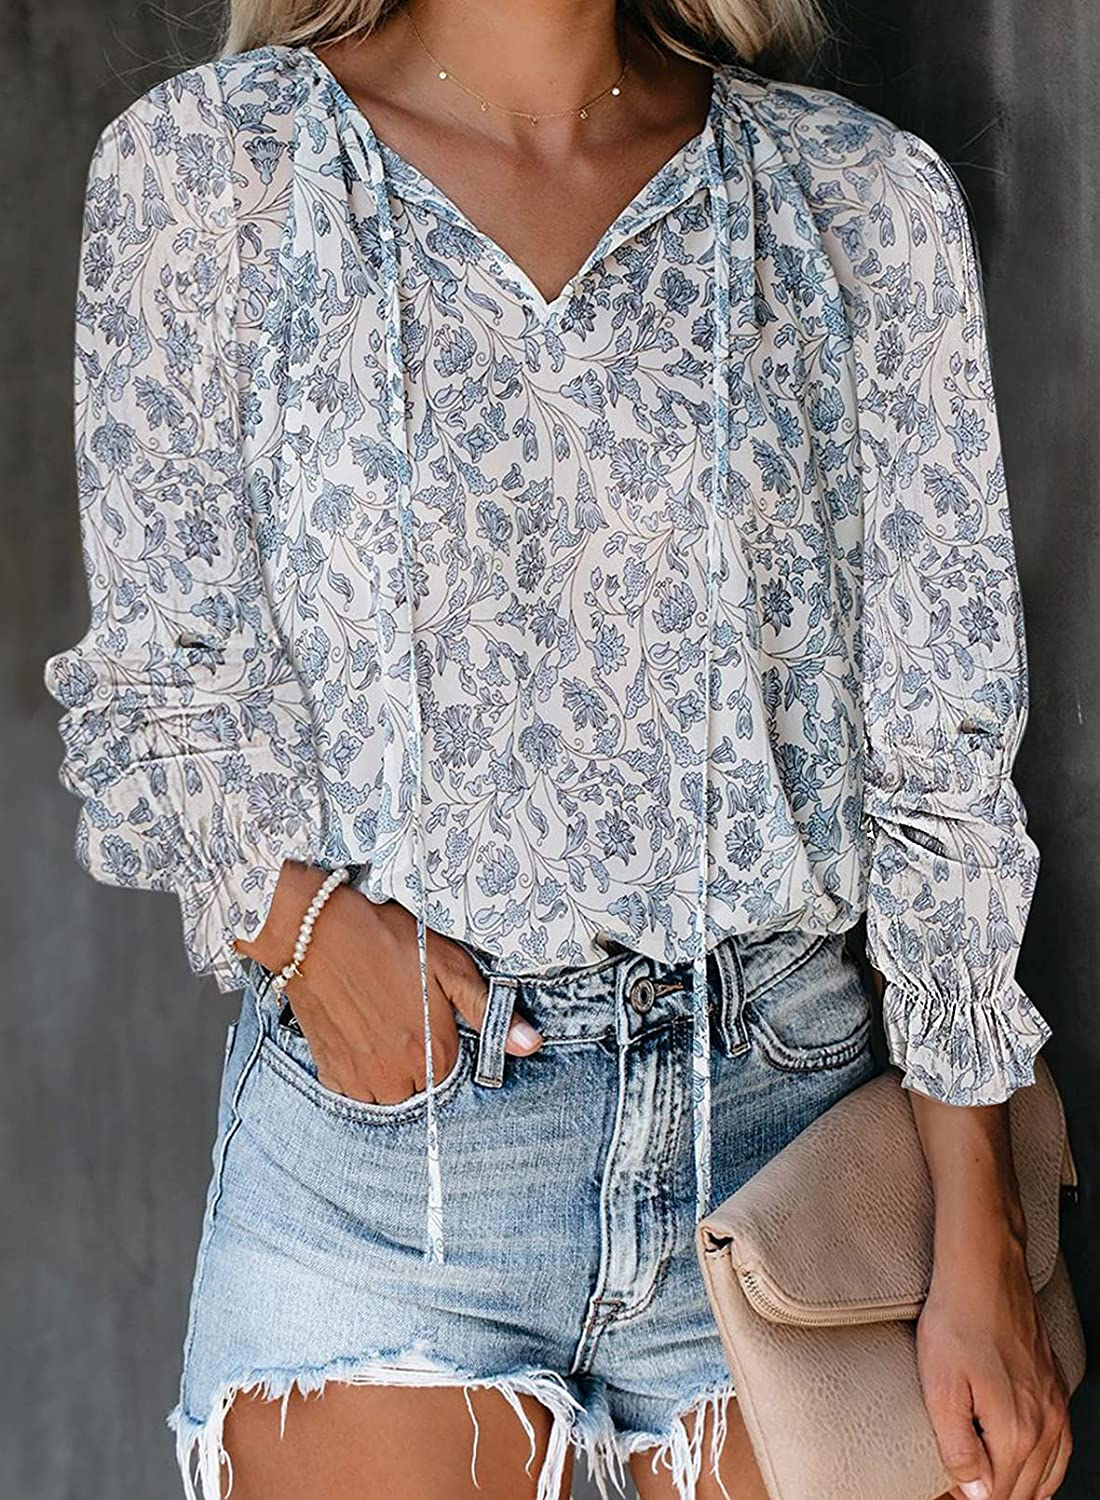 Astylish Womens Casual Floral V Neck Tops Short Sleeve Print T-Shirt Blouses